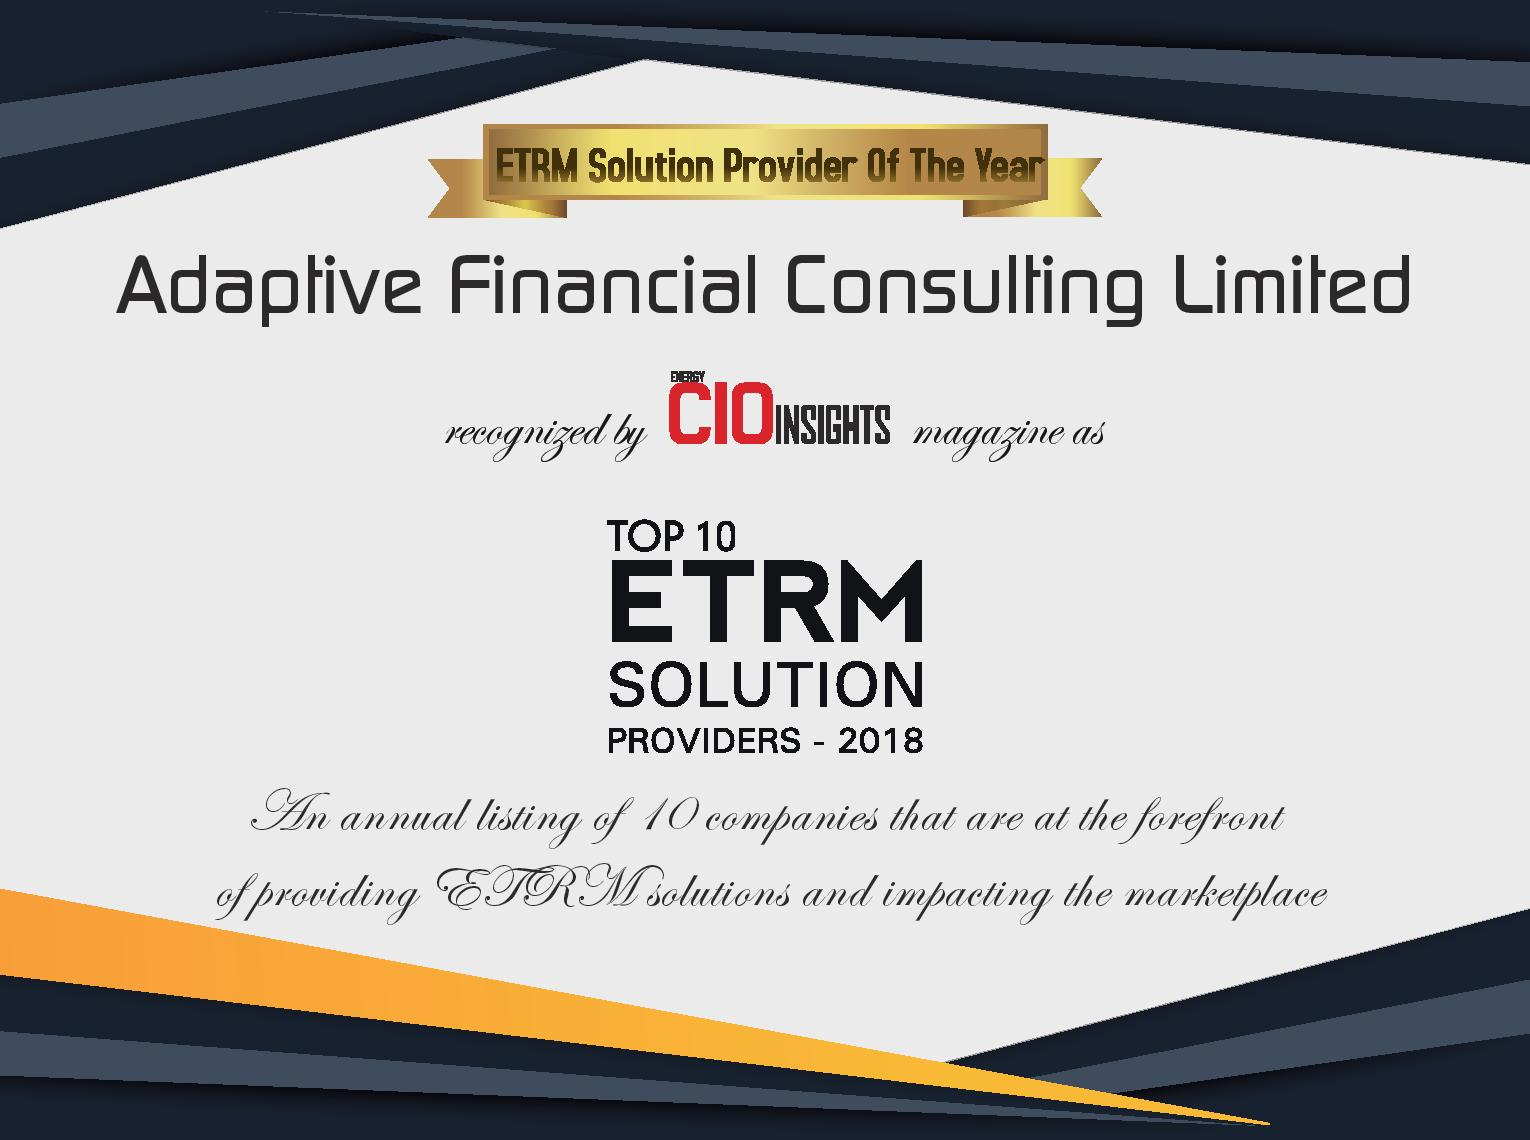 Adaptive named ETRM Provider Solution of the Year - Adaptive